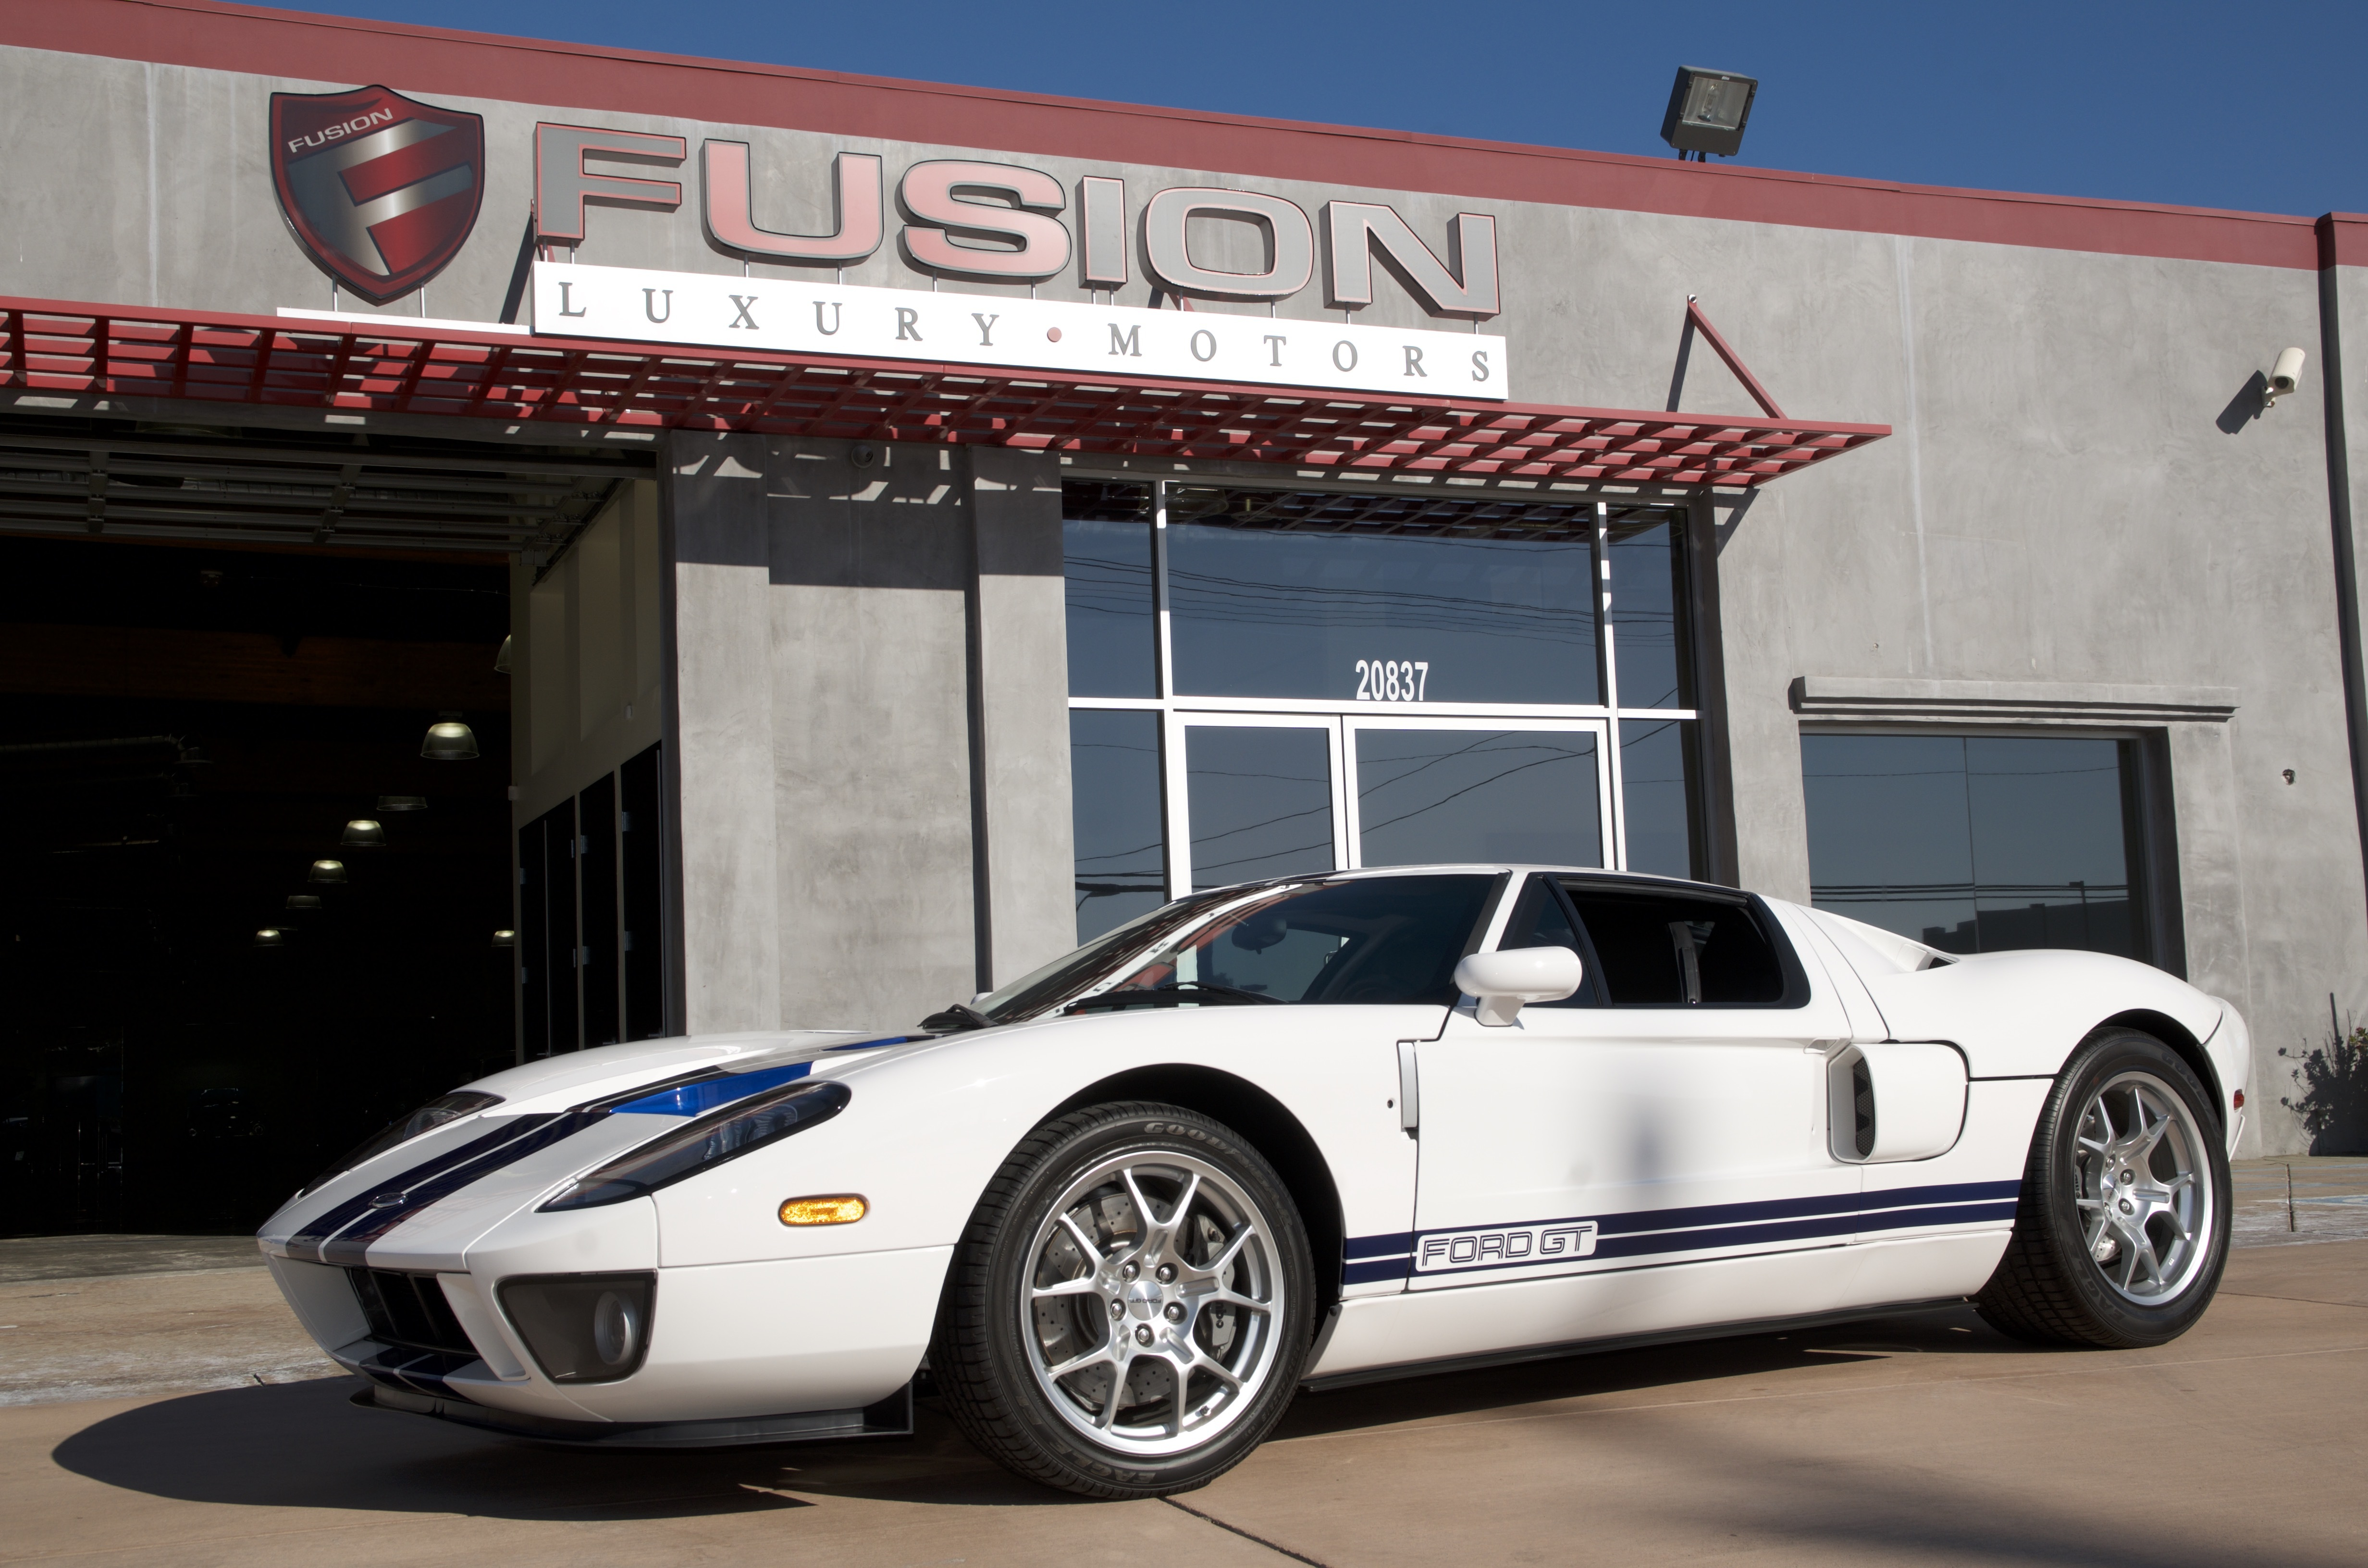 2006 Ford Gt Fusion Luxury Motors